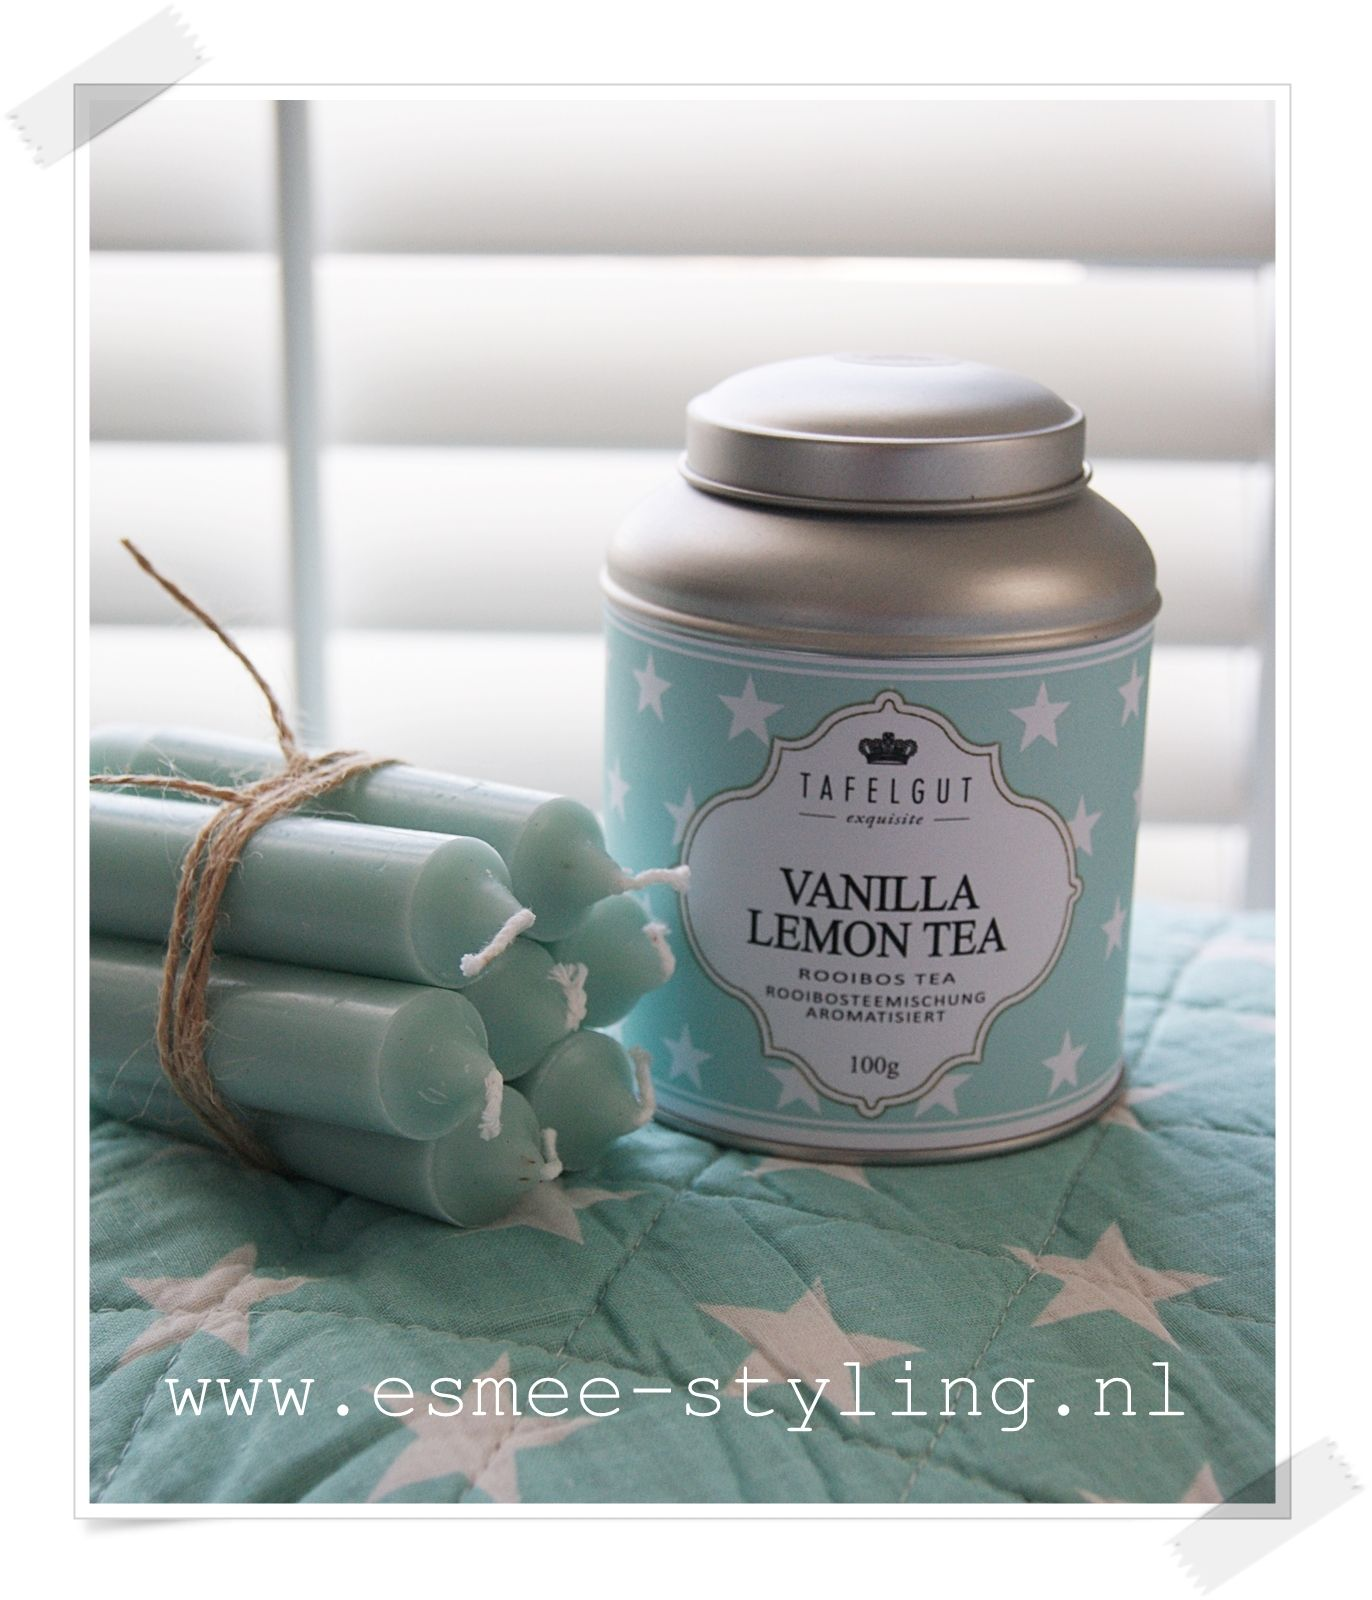 Tea Time by Esmee-styling